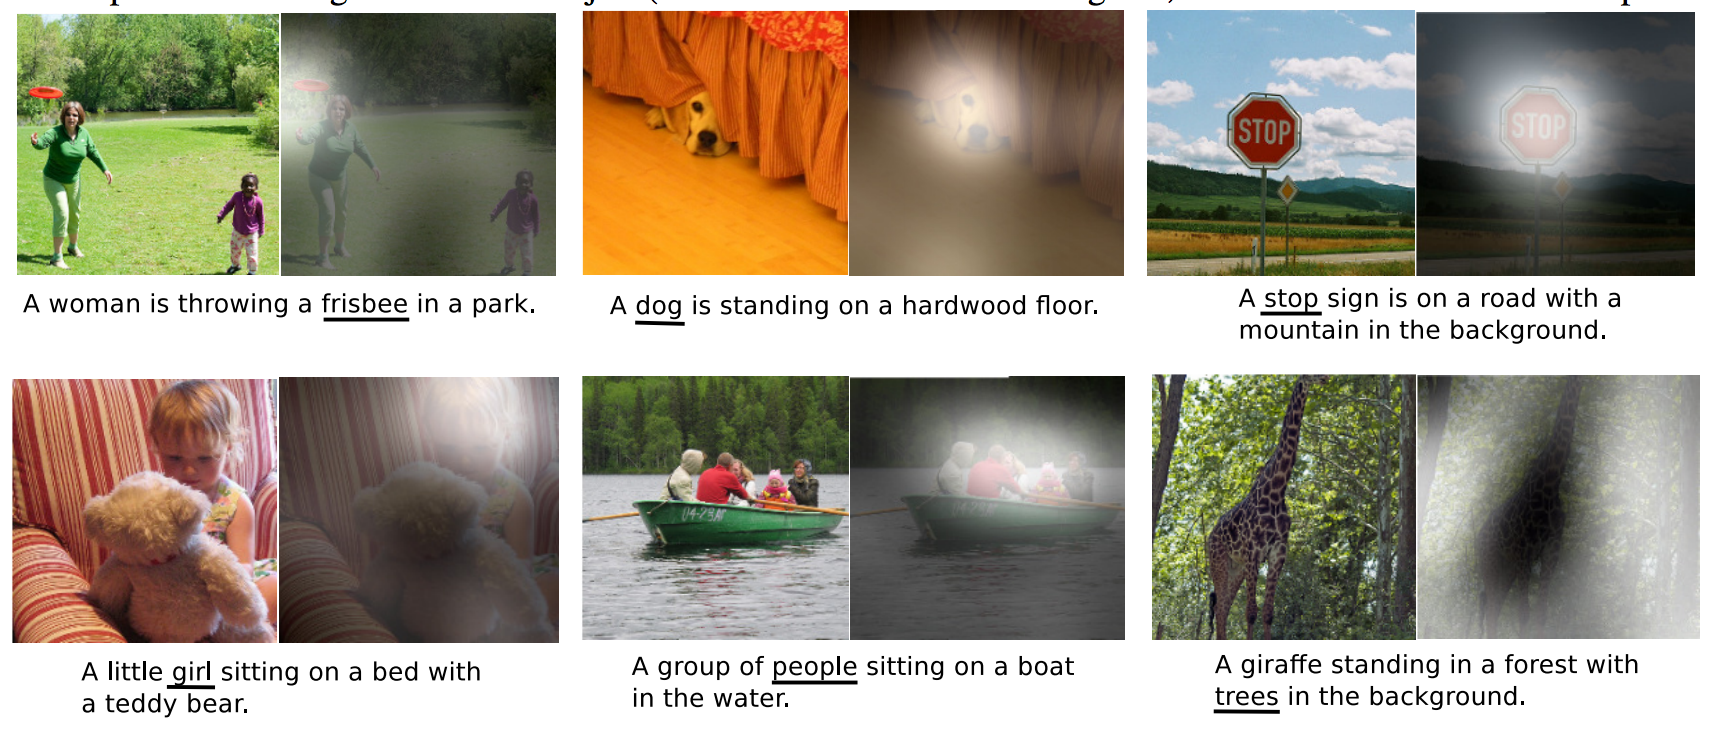 Example of image captioning with attention